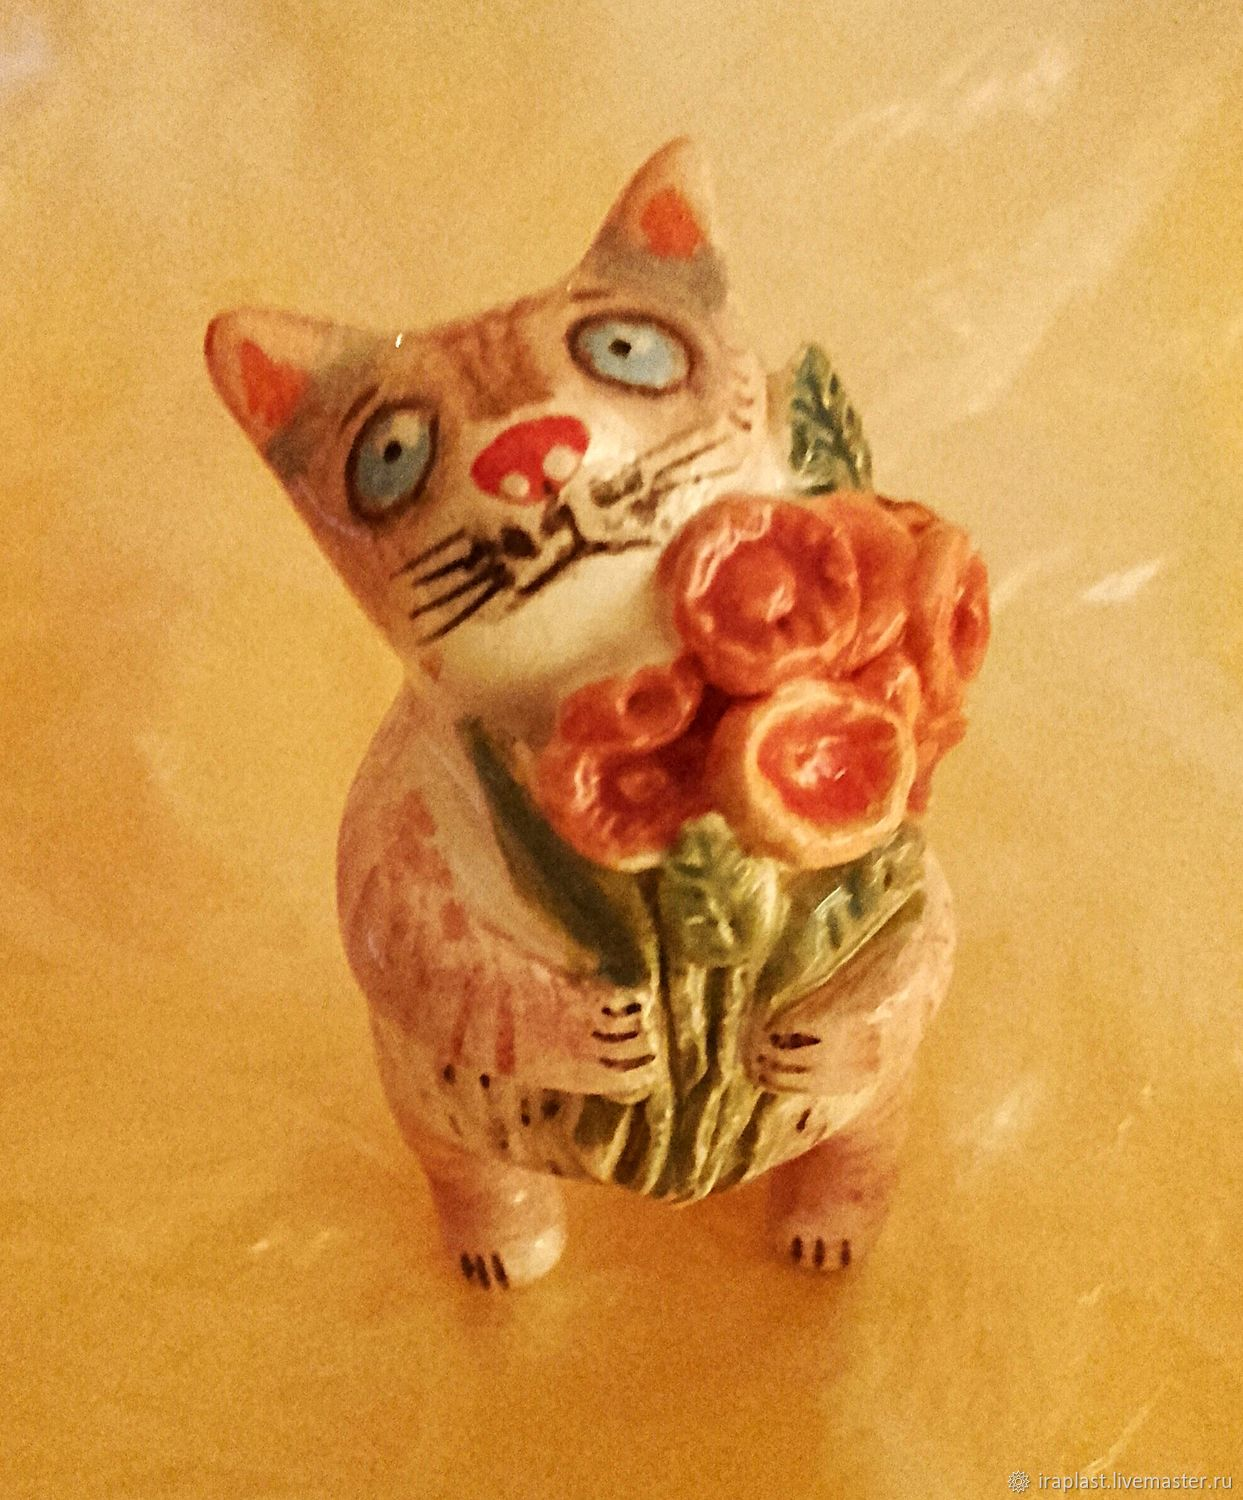 Ceramic Cat With Flowers Shop Online On Livemaster With Shipping